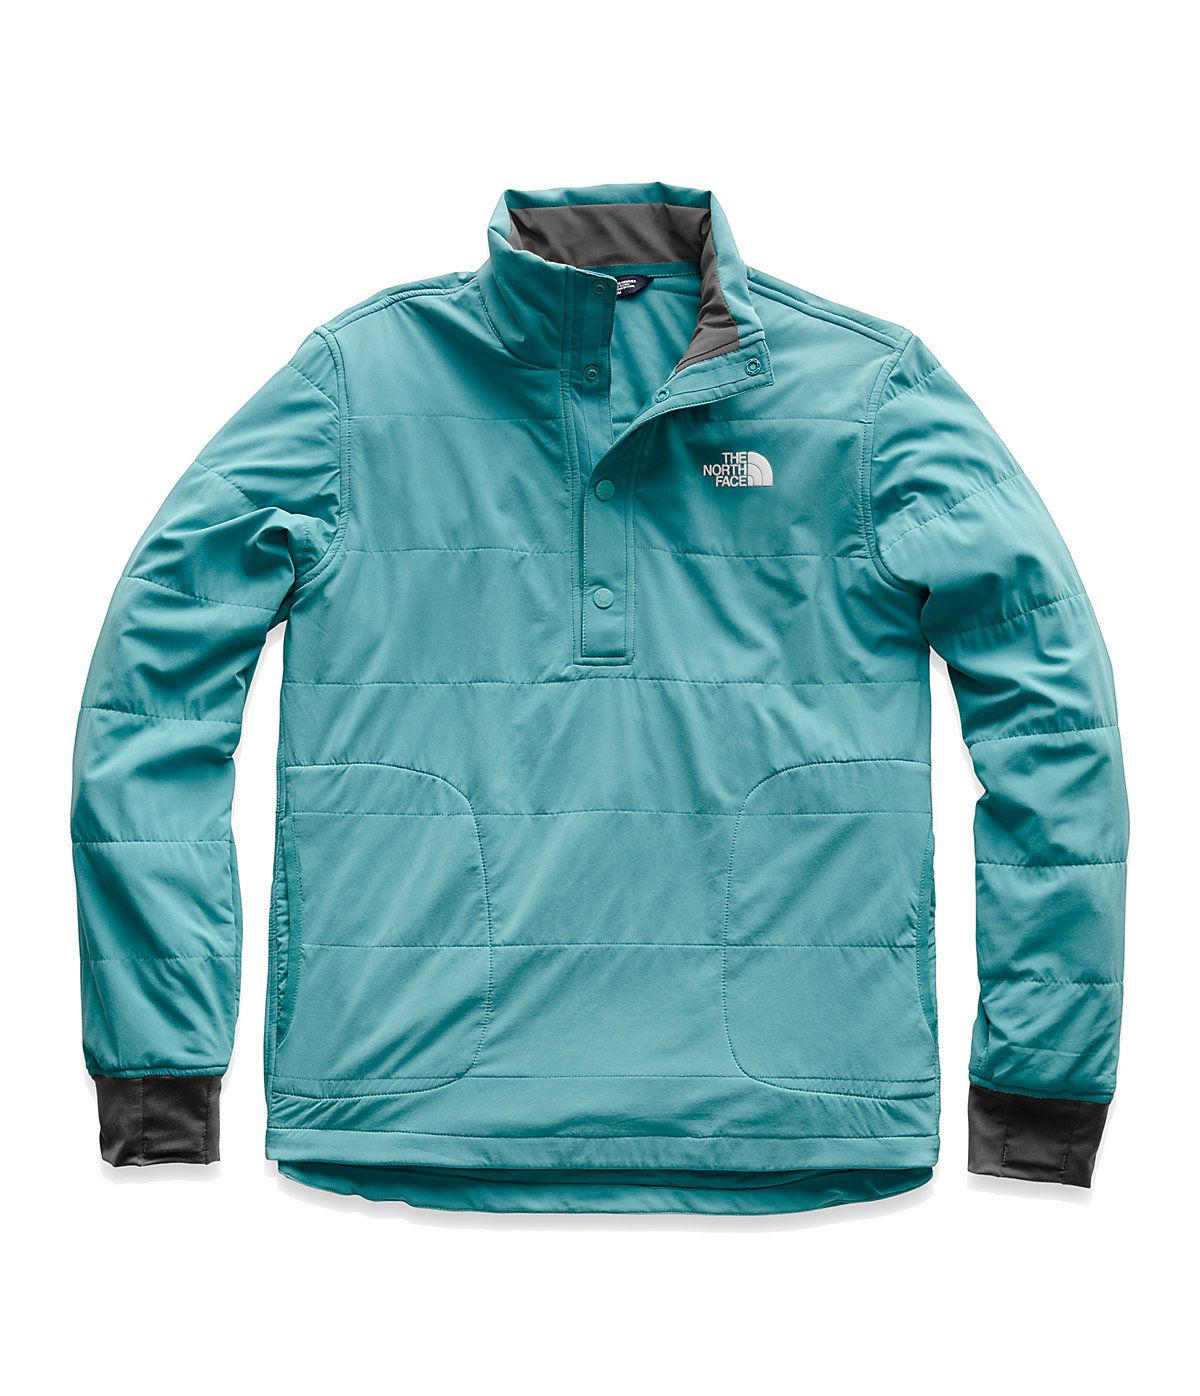 2f9853477 The North Face Men's Mountain Sweatshirt 188 Snap Neck Pullover in ...